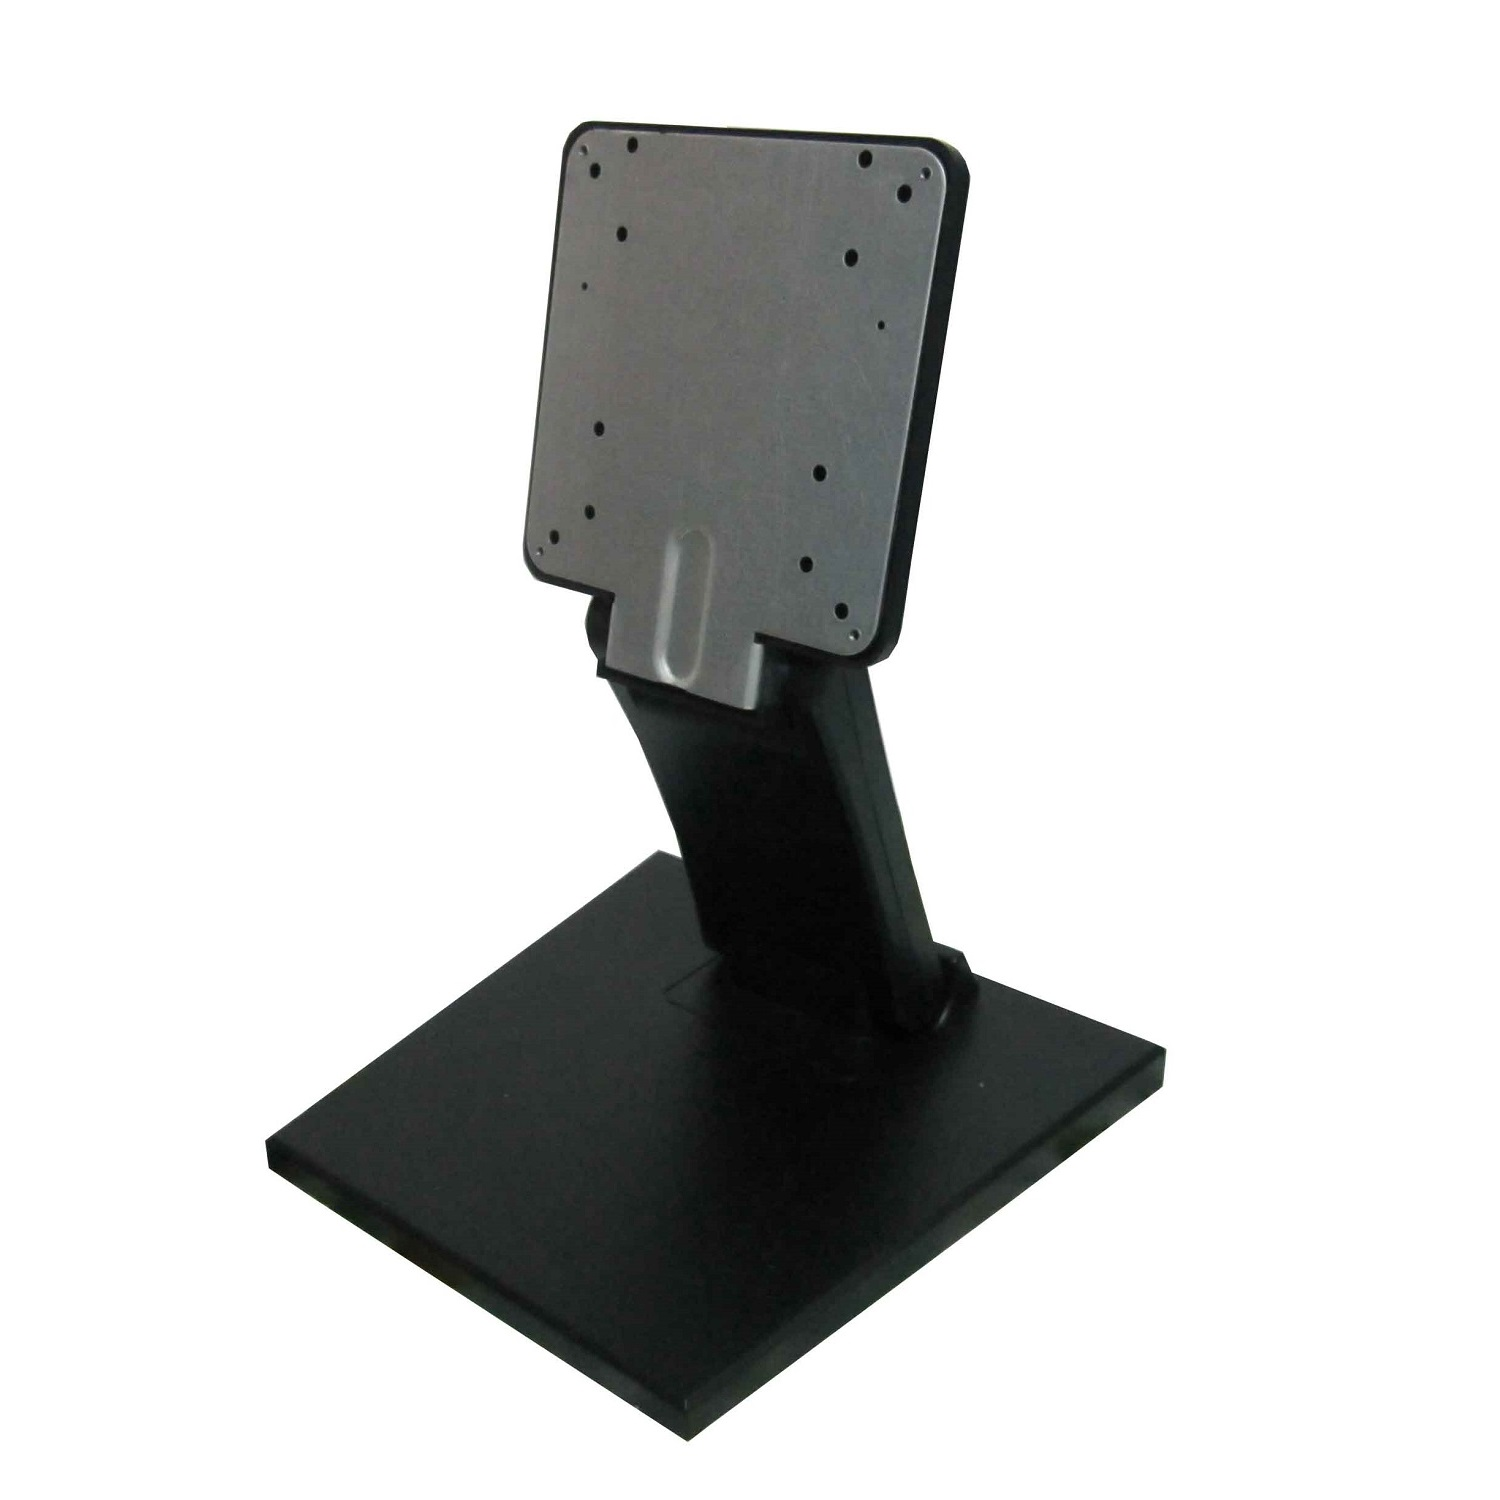 Tv08 Tv Or Monitor Universal Stand For Display Up To 27